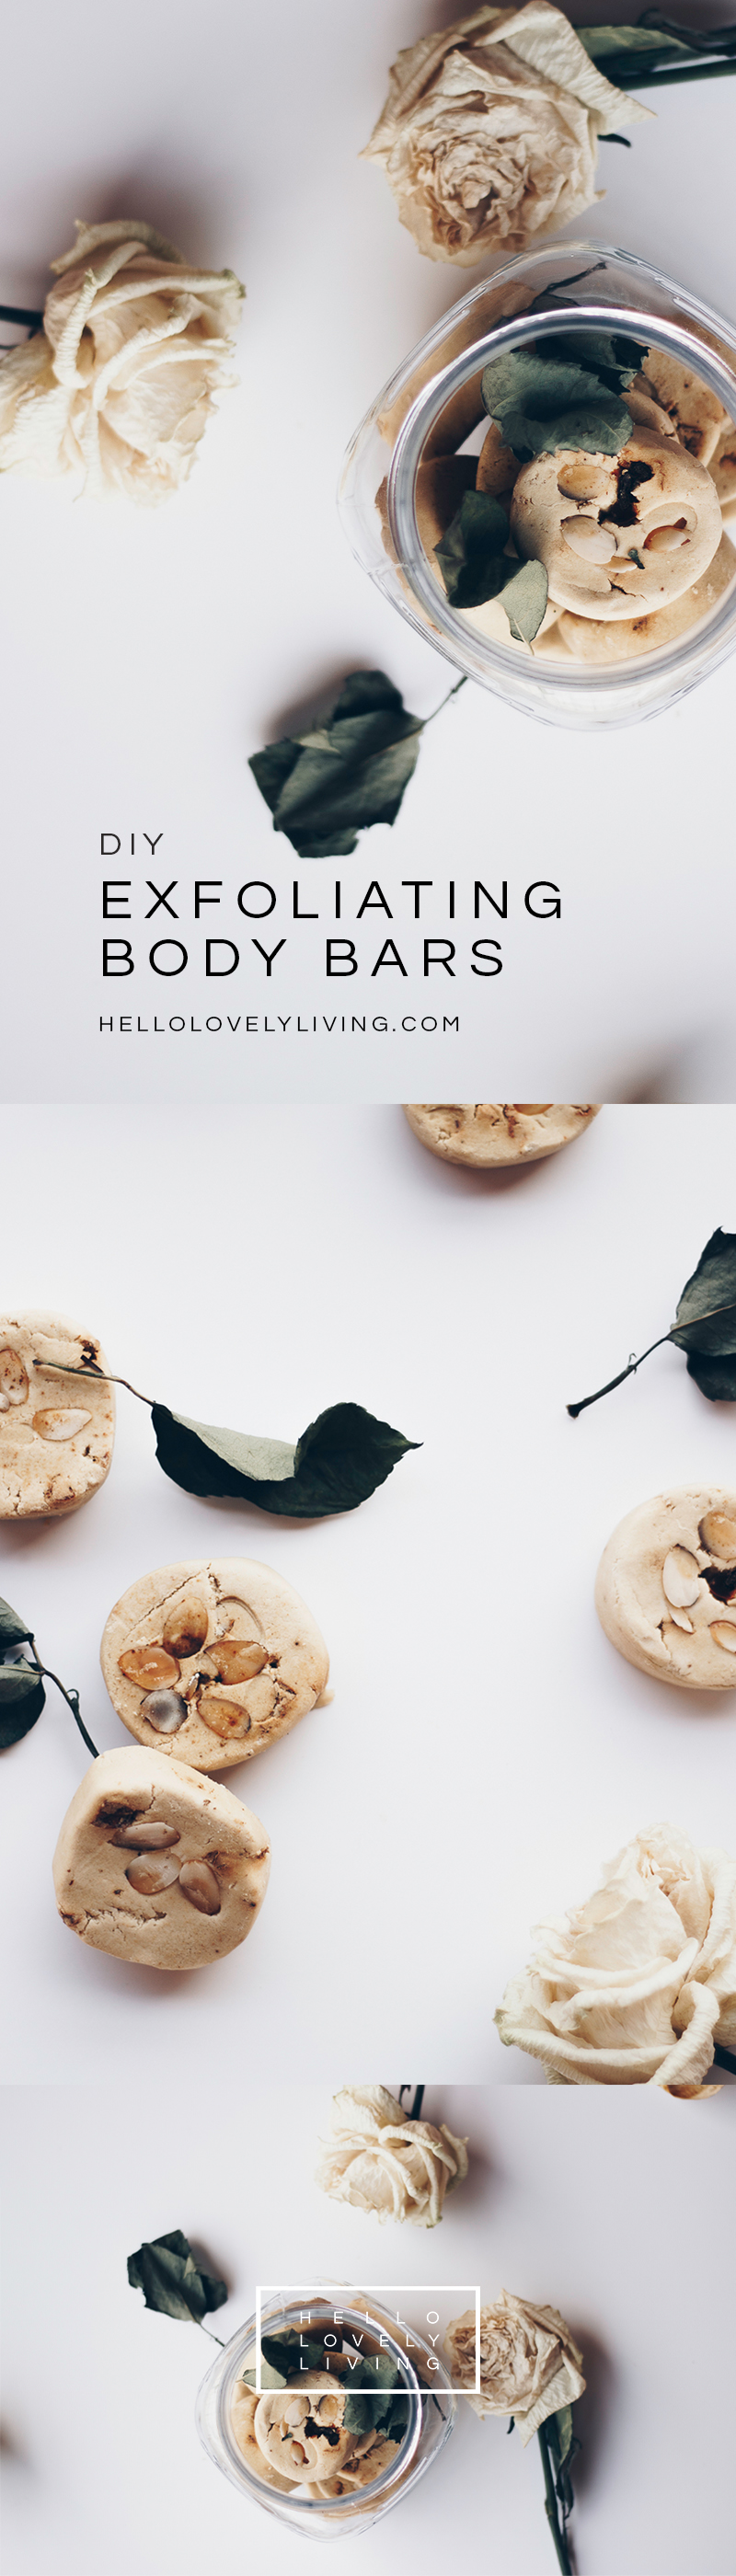 HelloLovelyLiving.com | DIY Exfoliating Body Bars